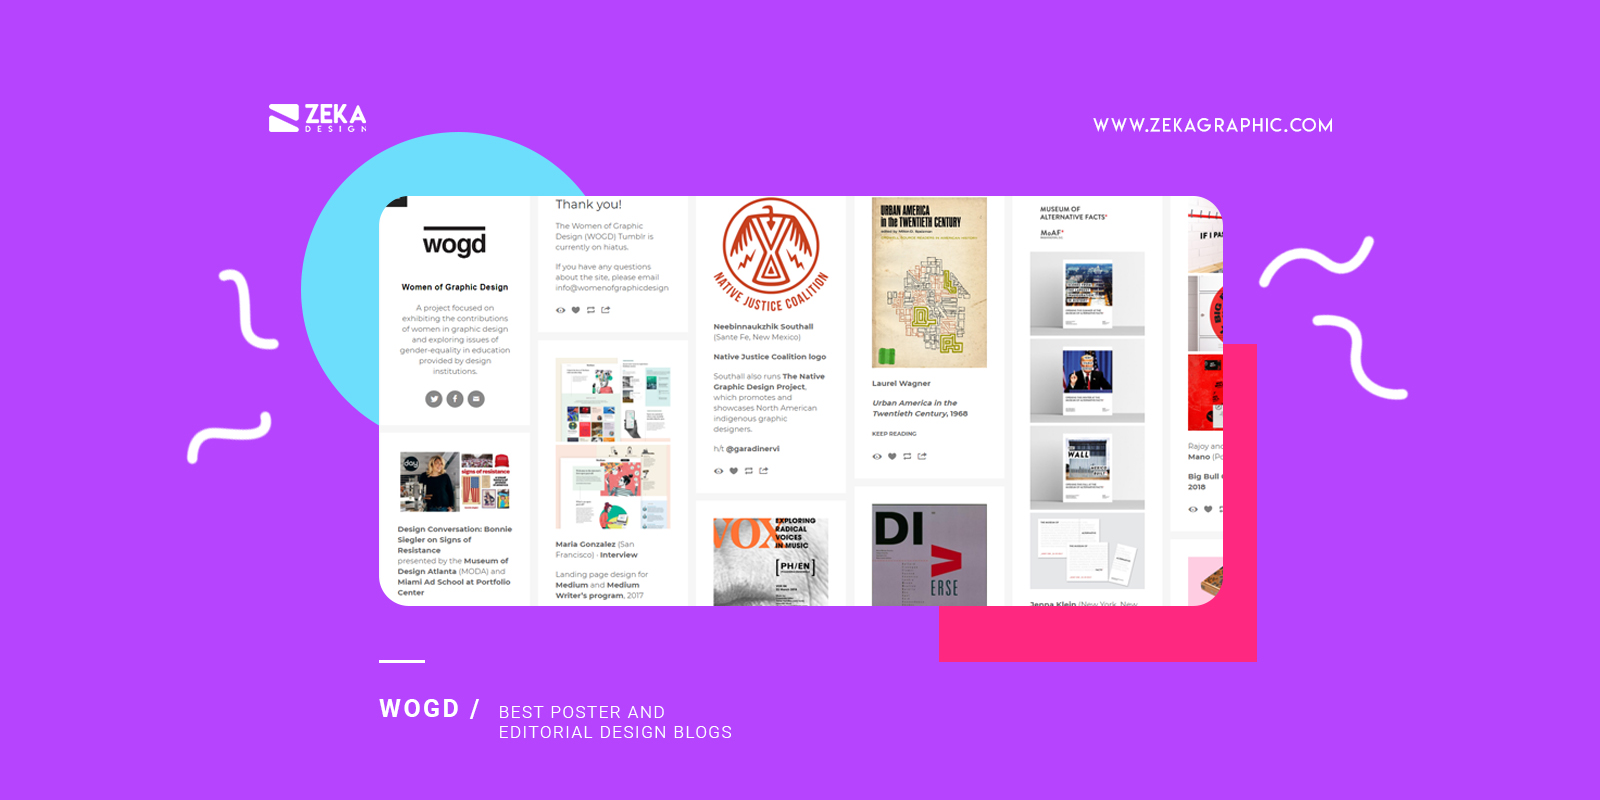 Women of Graphic Design Best poster and editorial design blogs